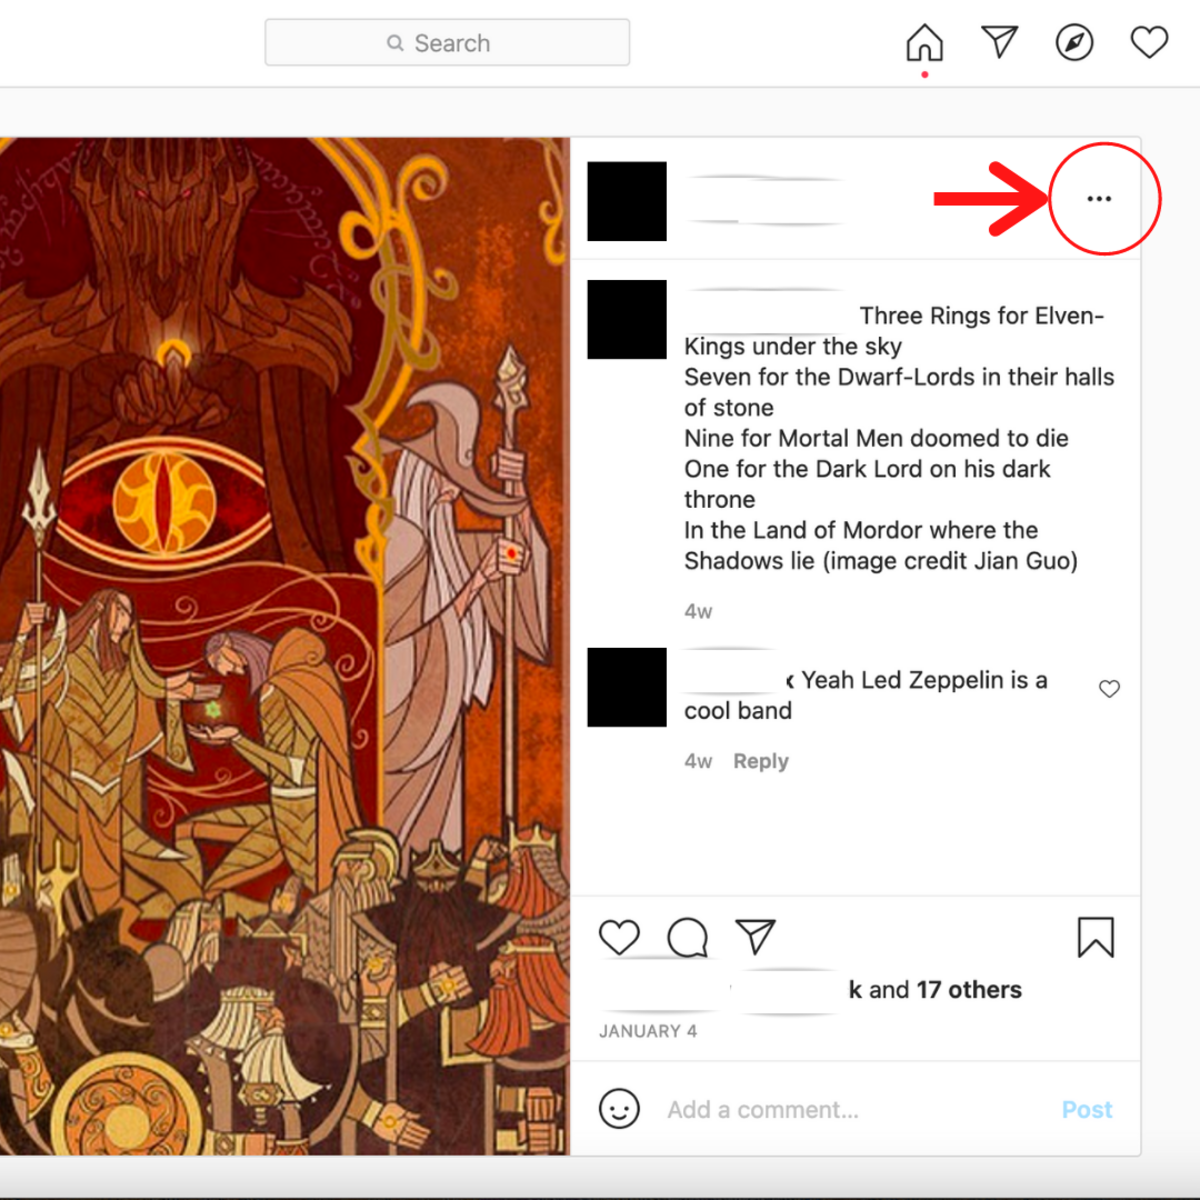 Click the dot icon to get Embed Options